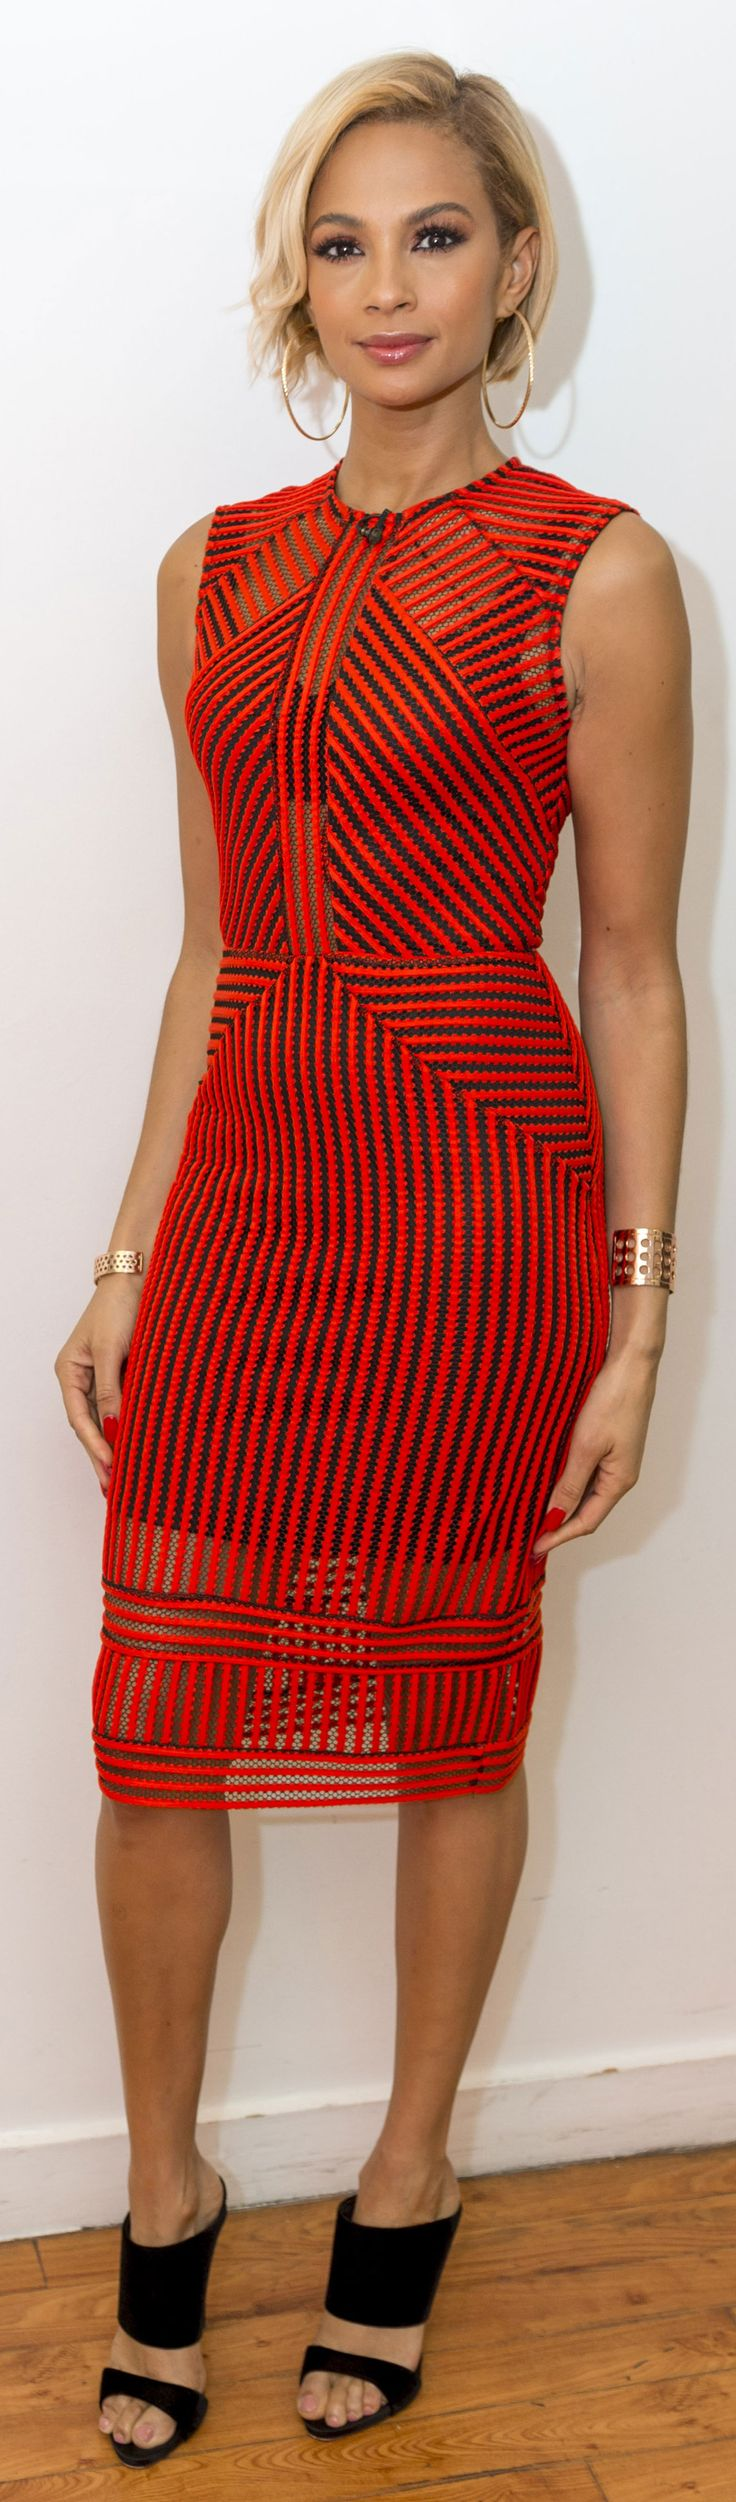 Alesha Dixon and these celebs spill the secret on where to buy their looks!